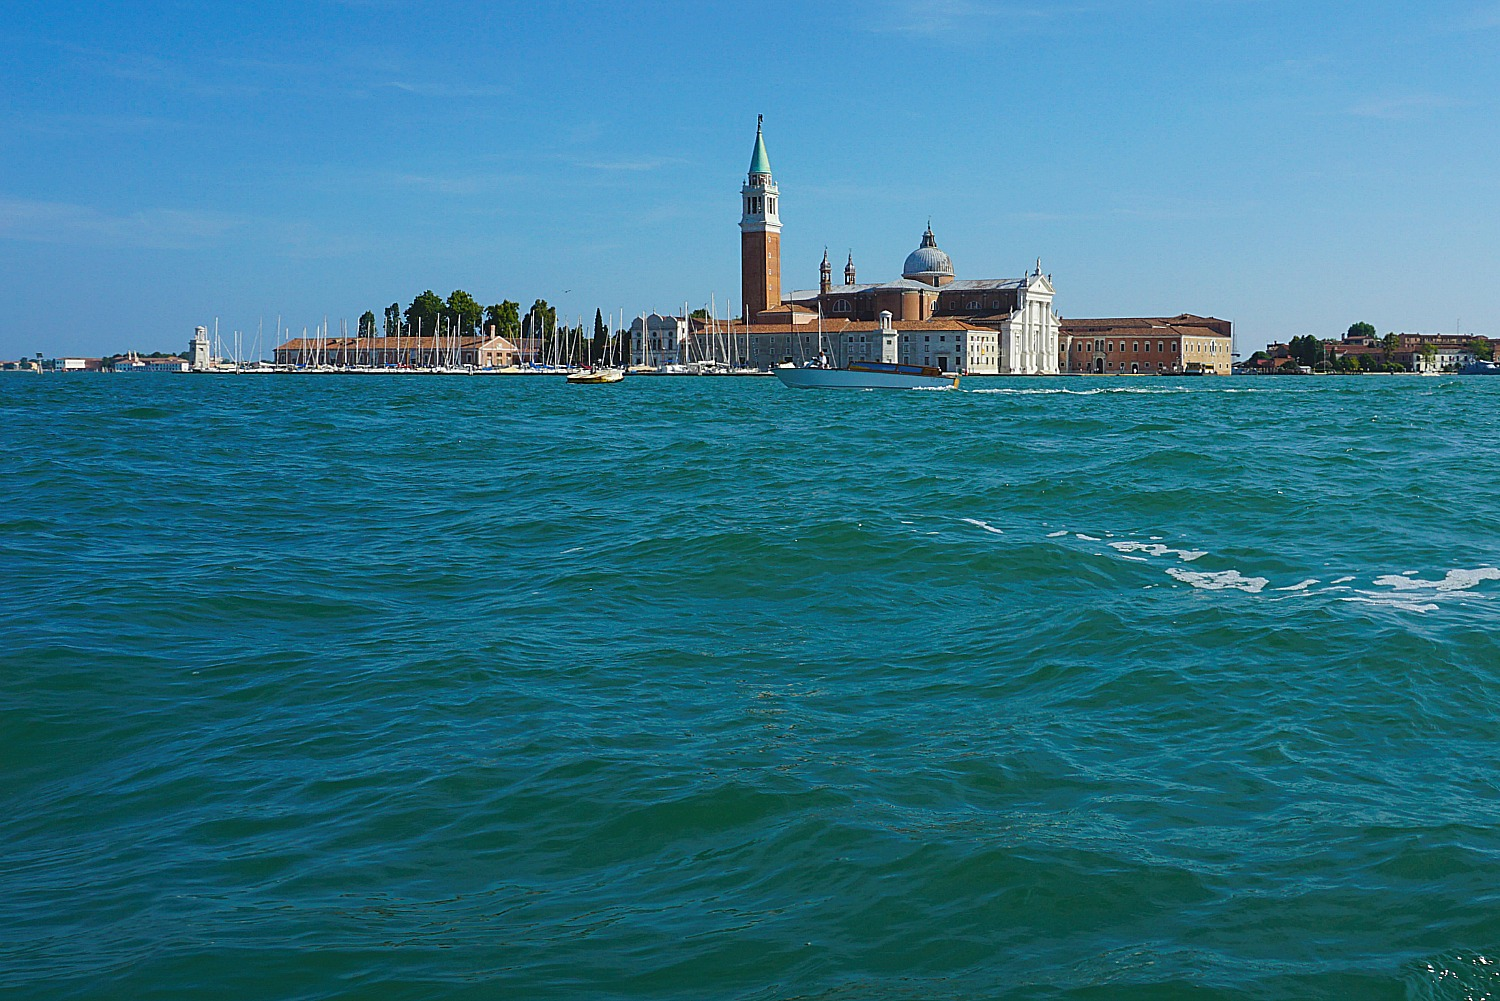 Distance views of Venice from the water.